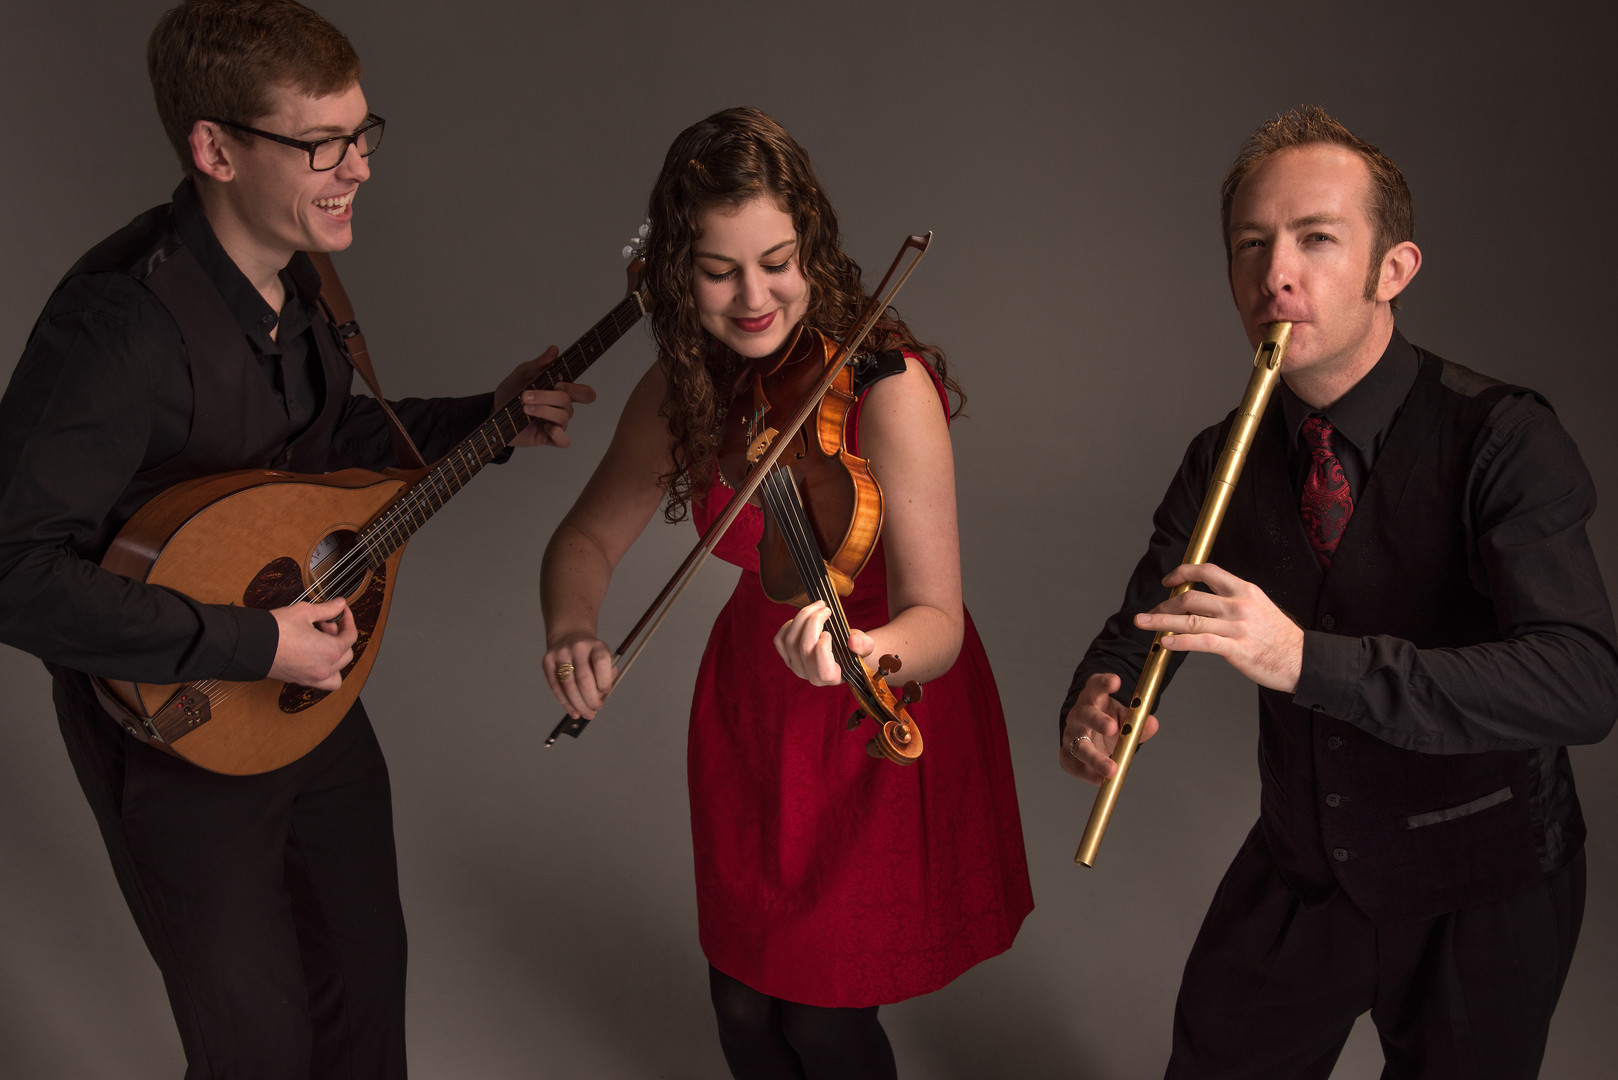 The Fire trio 3. Paul Schraub Photography